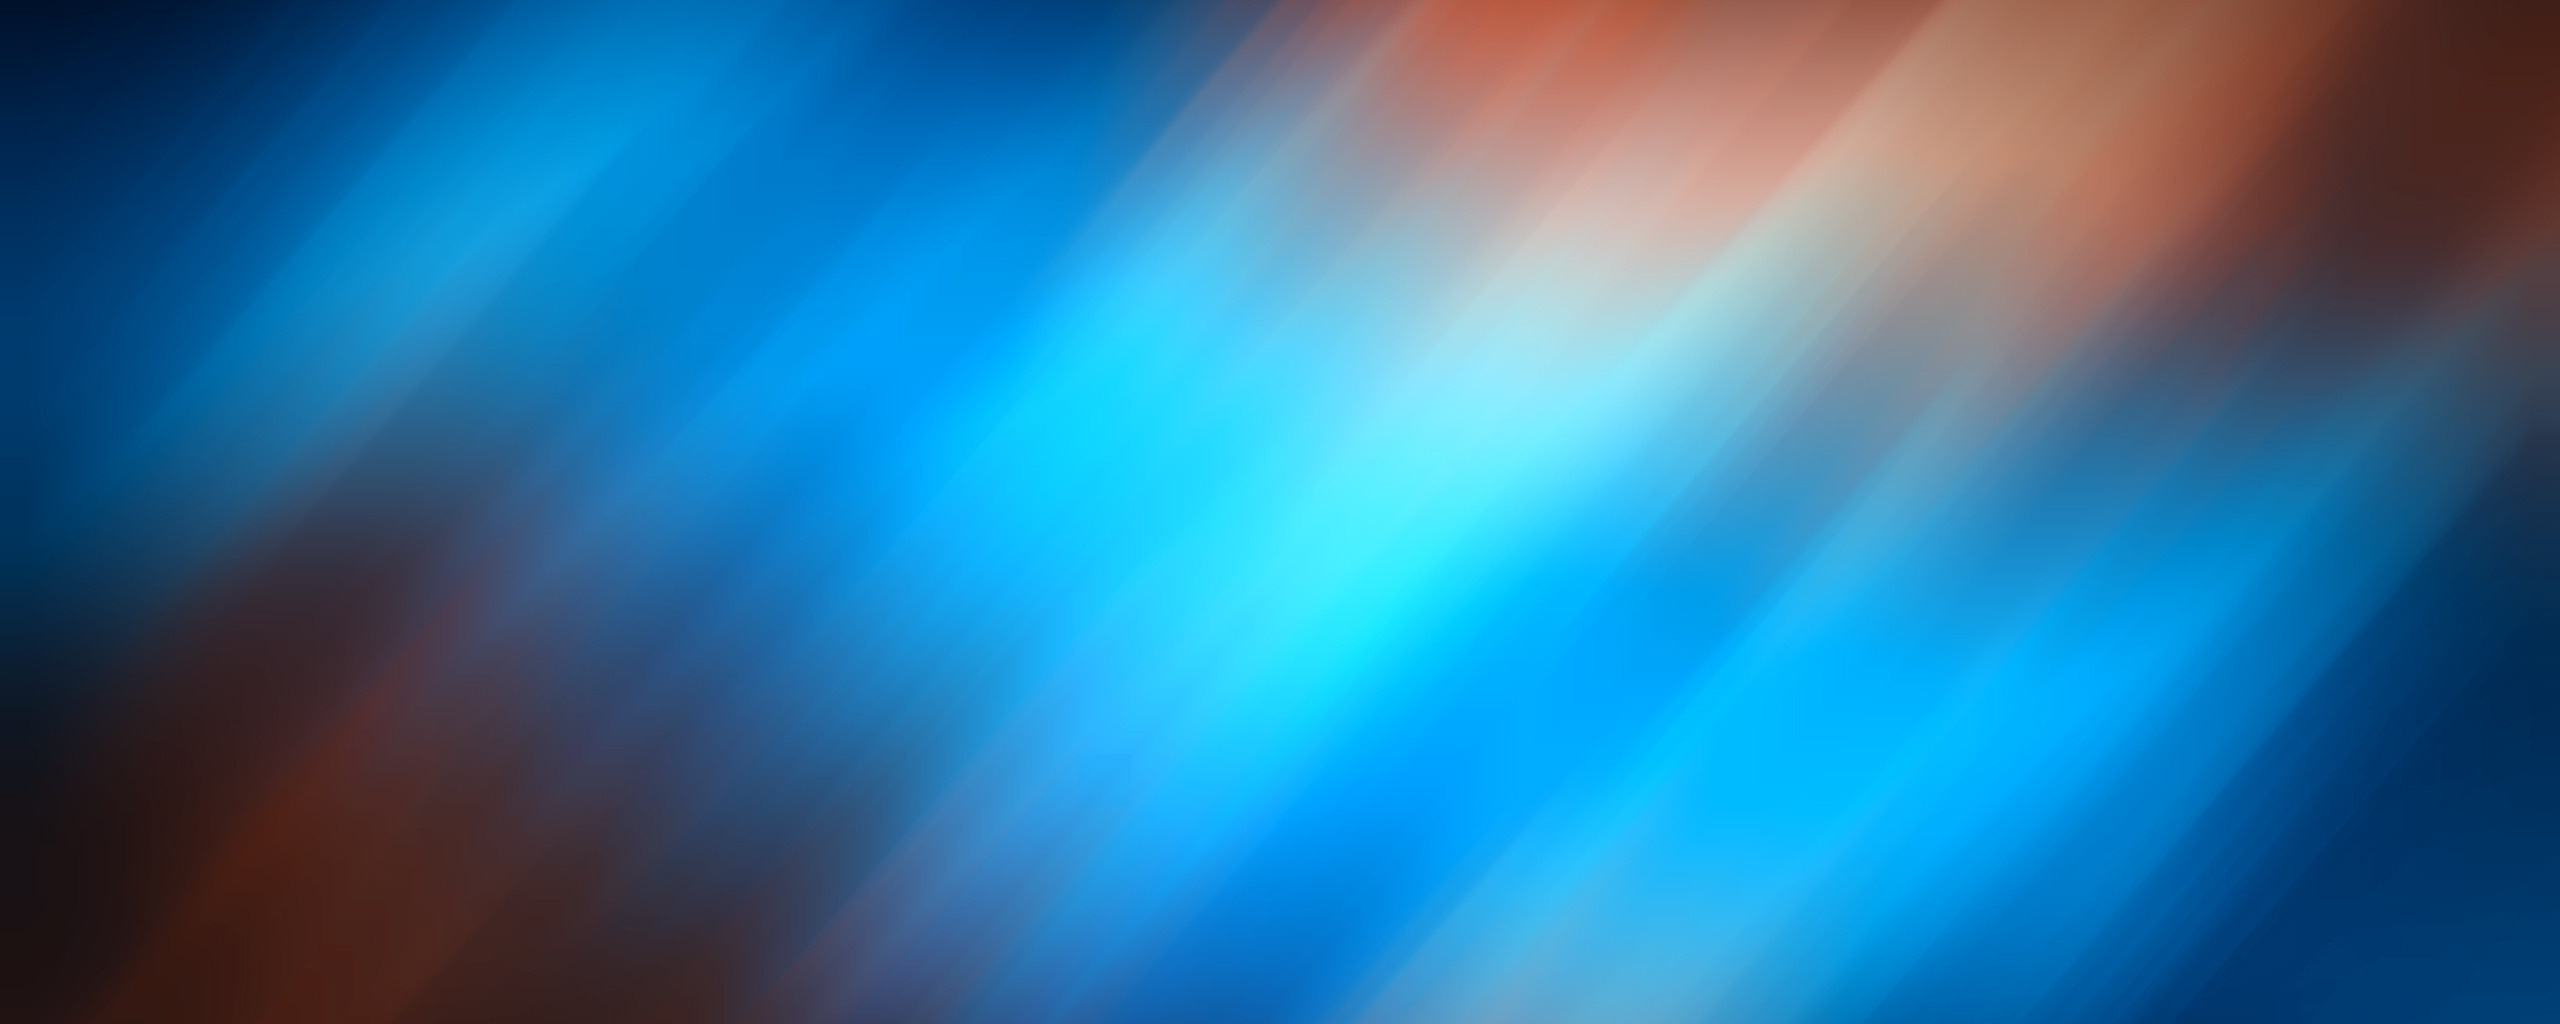 Abstract, colors, gradient, 2560x1024 wallpaper